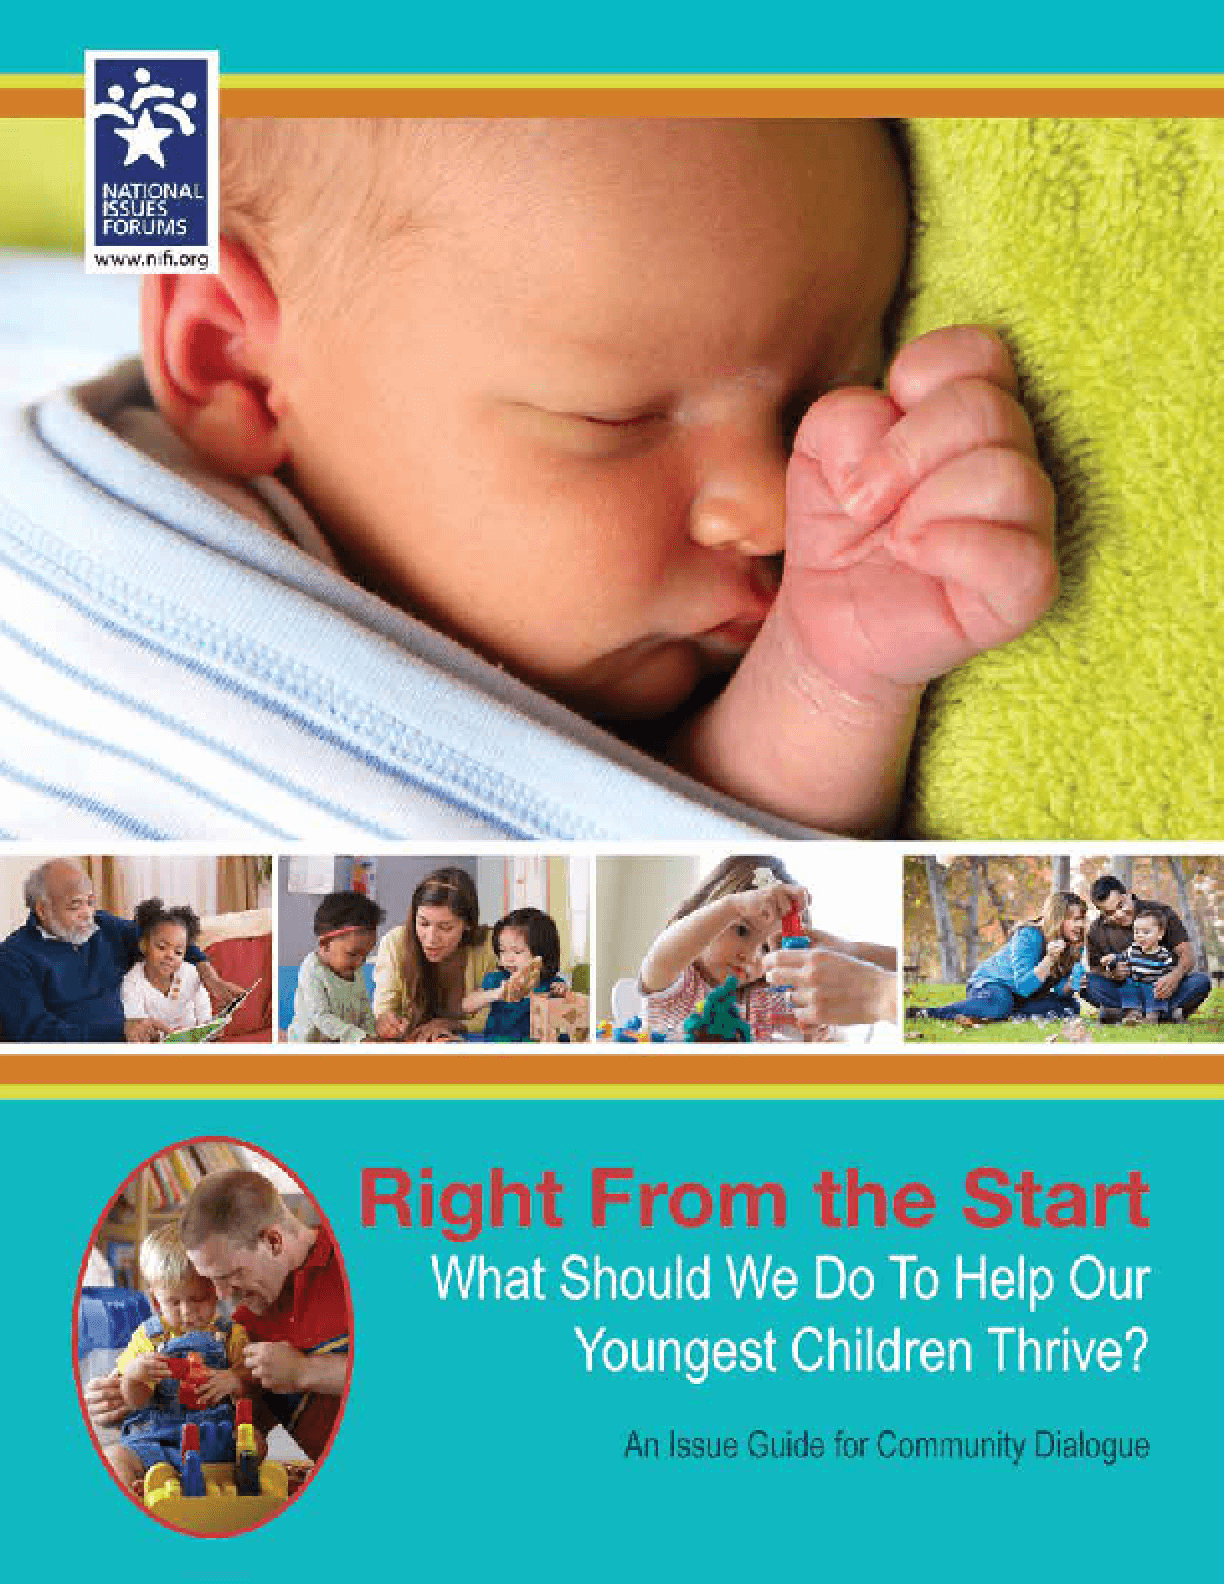 Right From the Start: What Should We Do To Help Our Youngest Children Thrive?